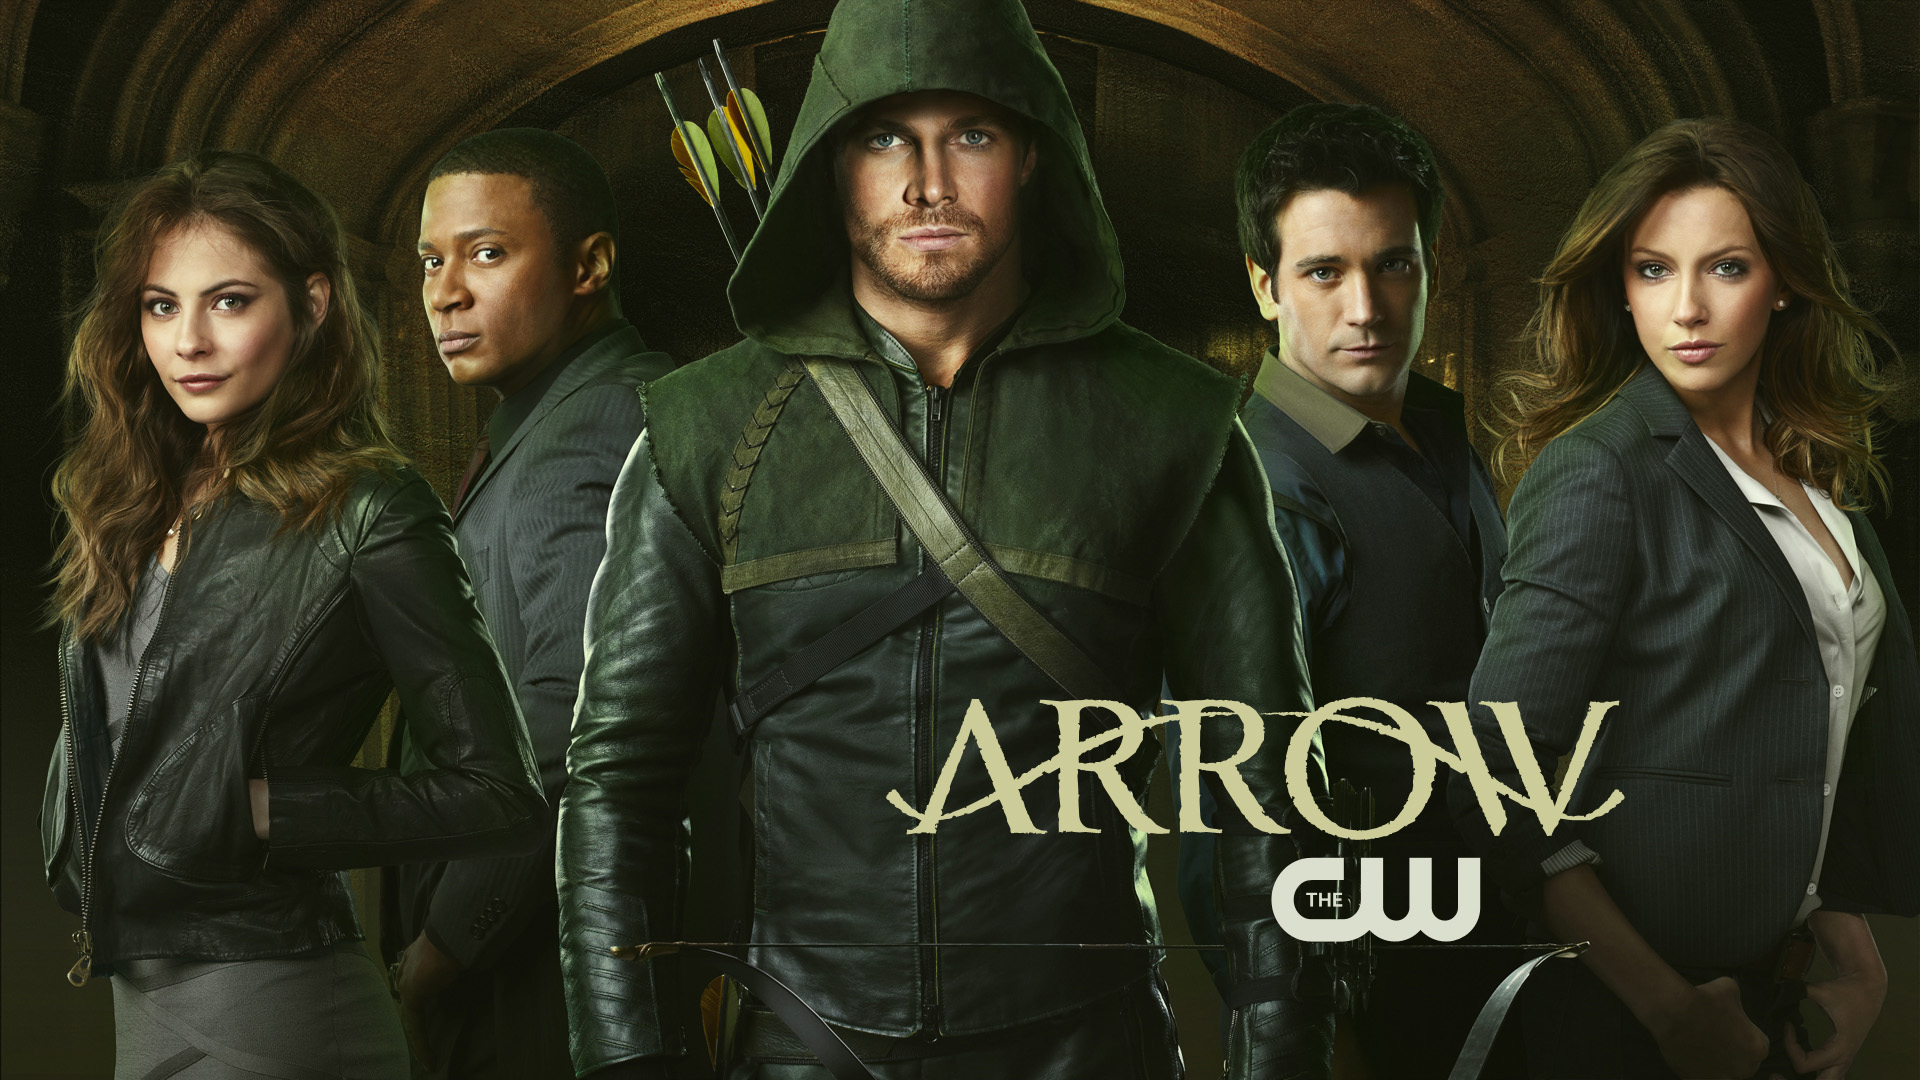 Arrow cw tv show HD wallpapers backgrounds   WallpaperAsk 1920x1080